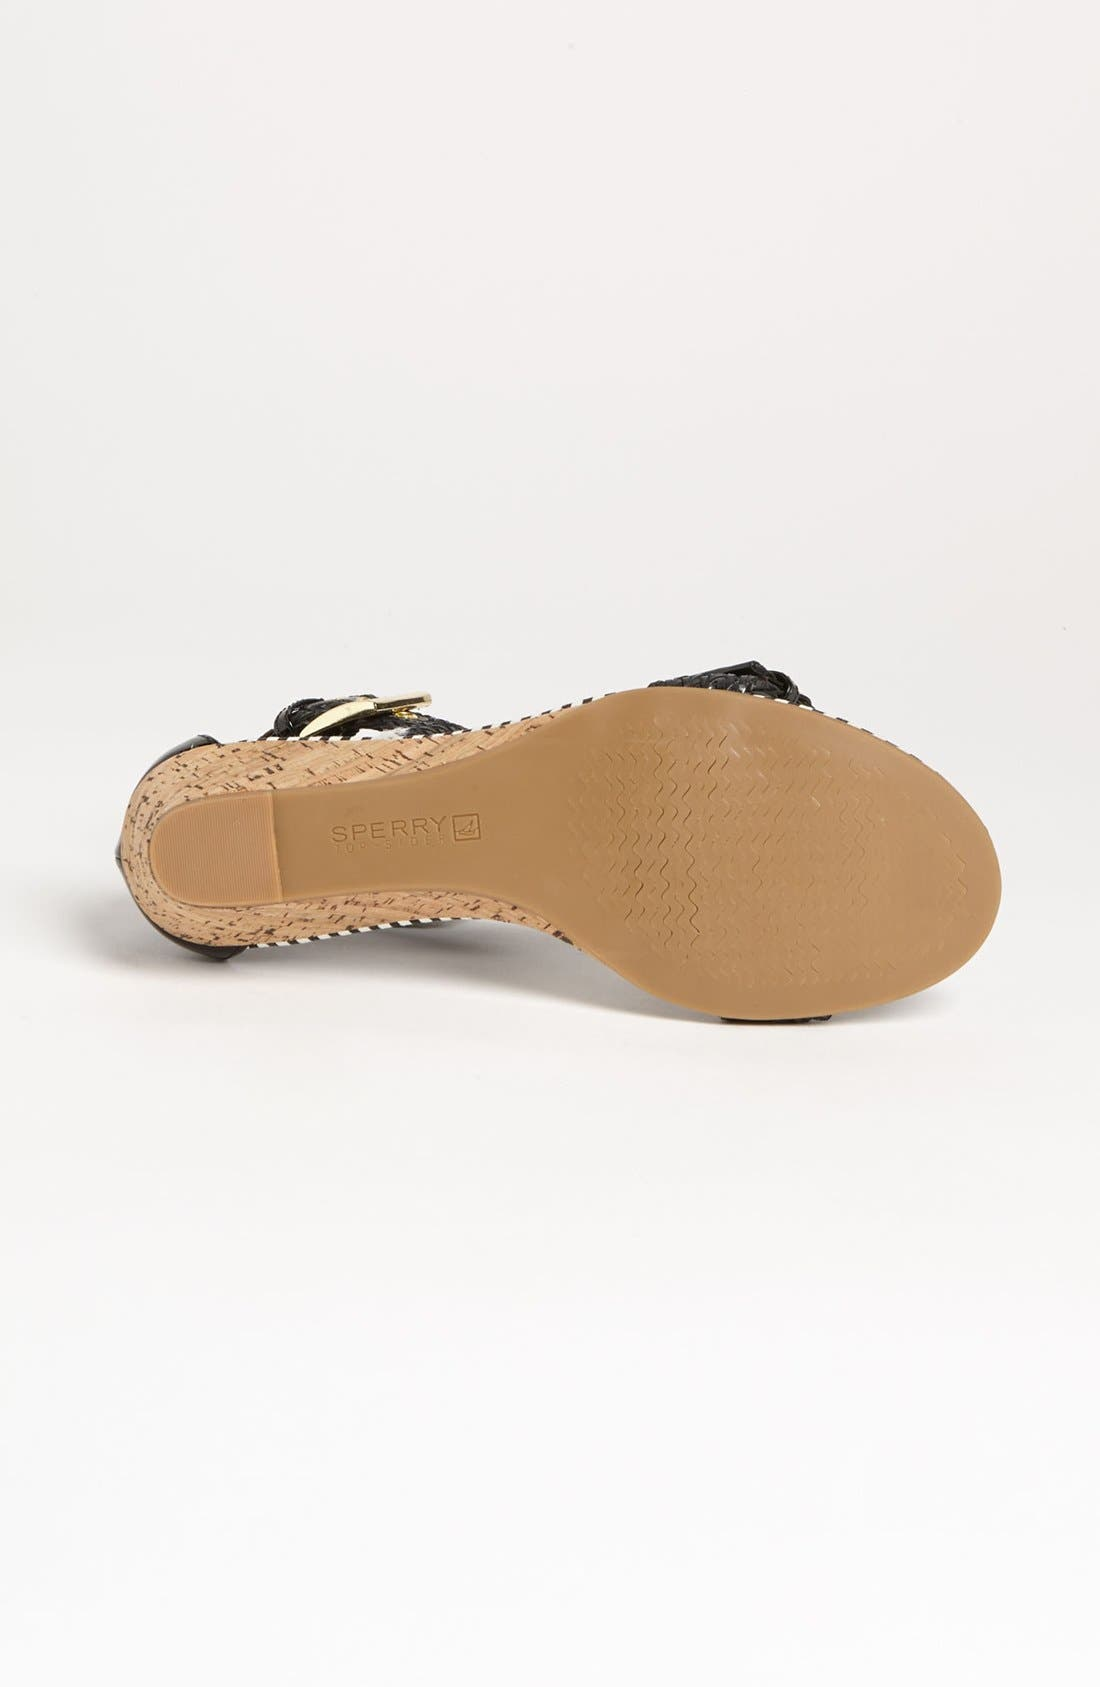 SPERRY, Top-Sider<sup>®</sup> 'Lynbrook' Sandal, Alternate thumbnail 4, color, 001